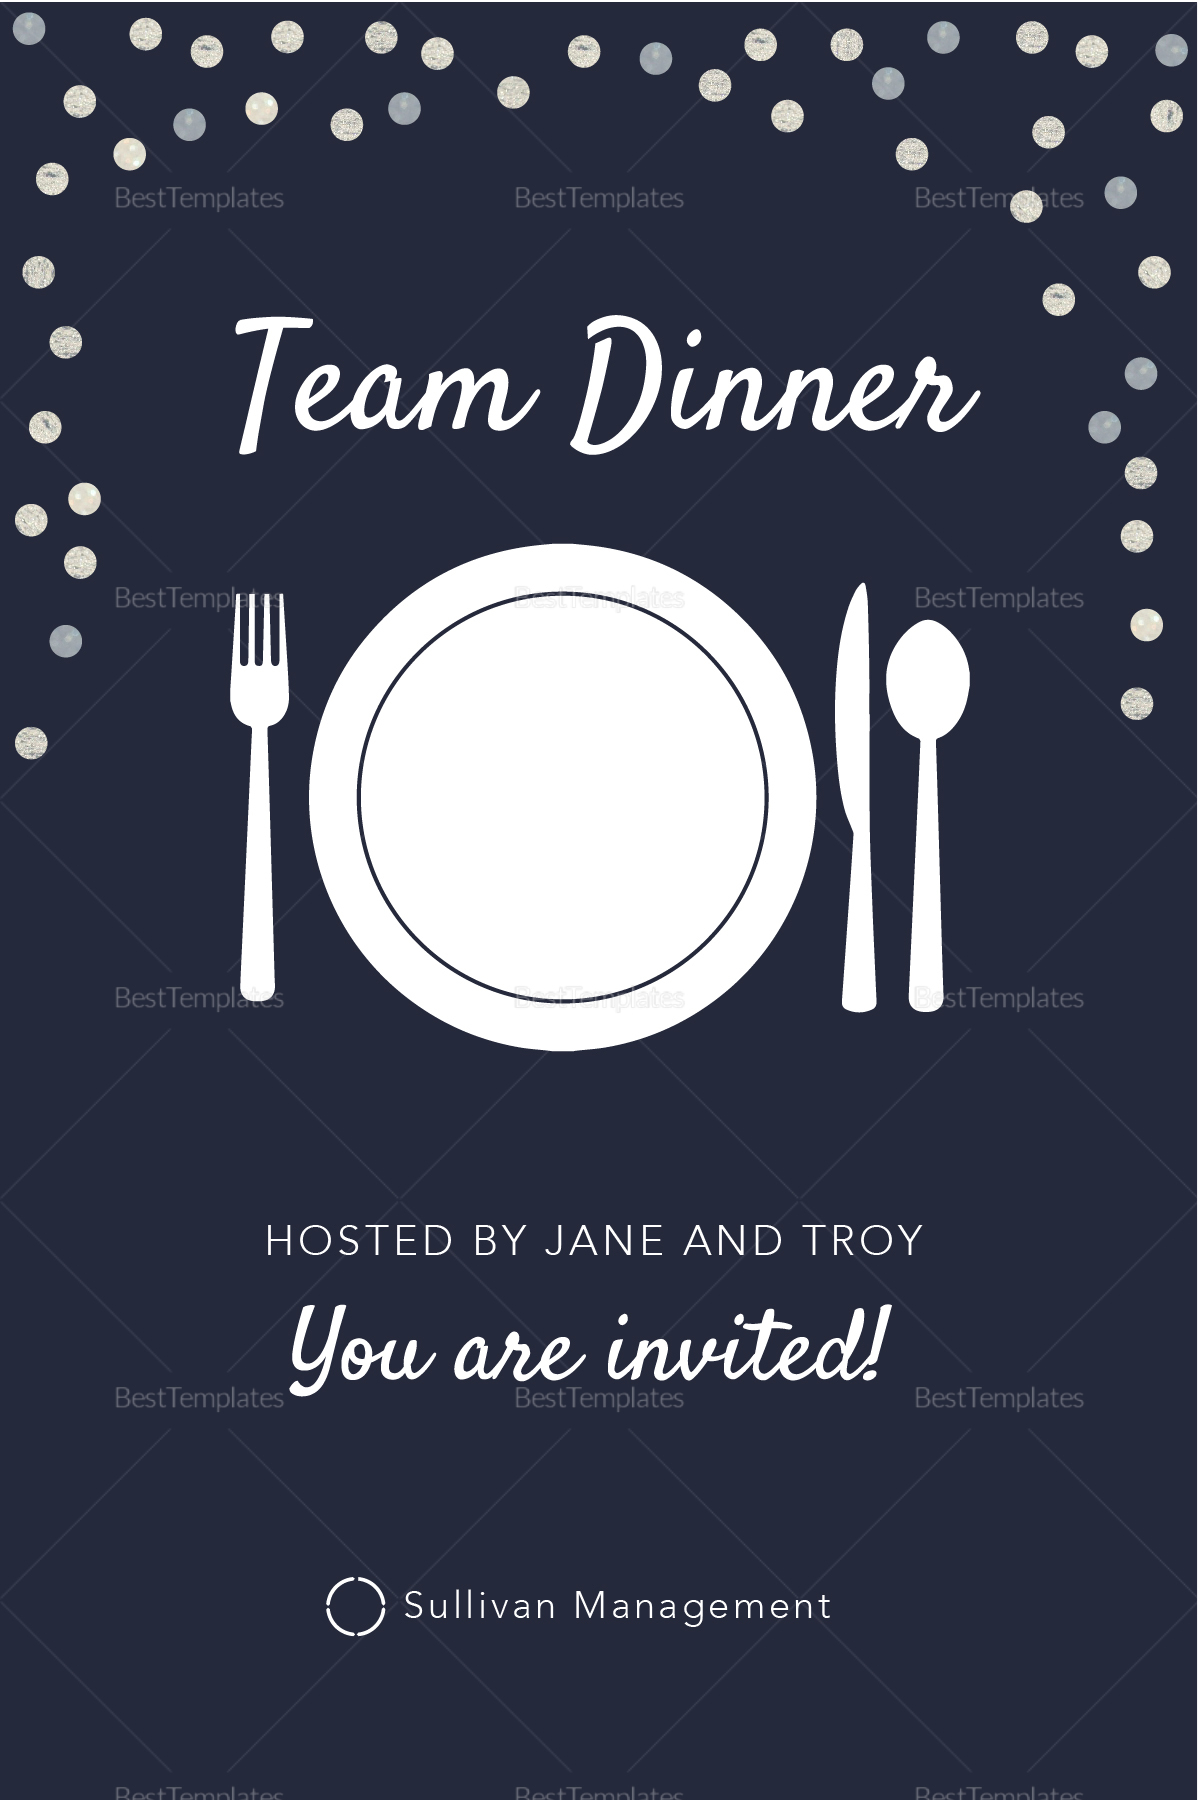 Popular Team Dinner Invitation Samples Team Dinner Invitation Samples Invitation Dinner Template Dinner Invitation Templates wedding invitation Dinner Invitation Template